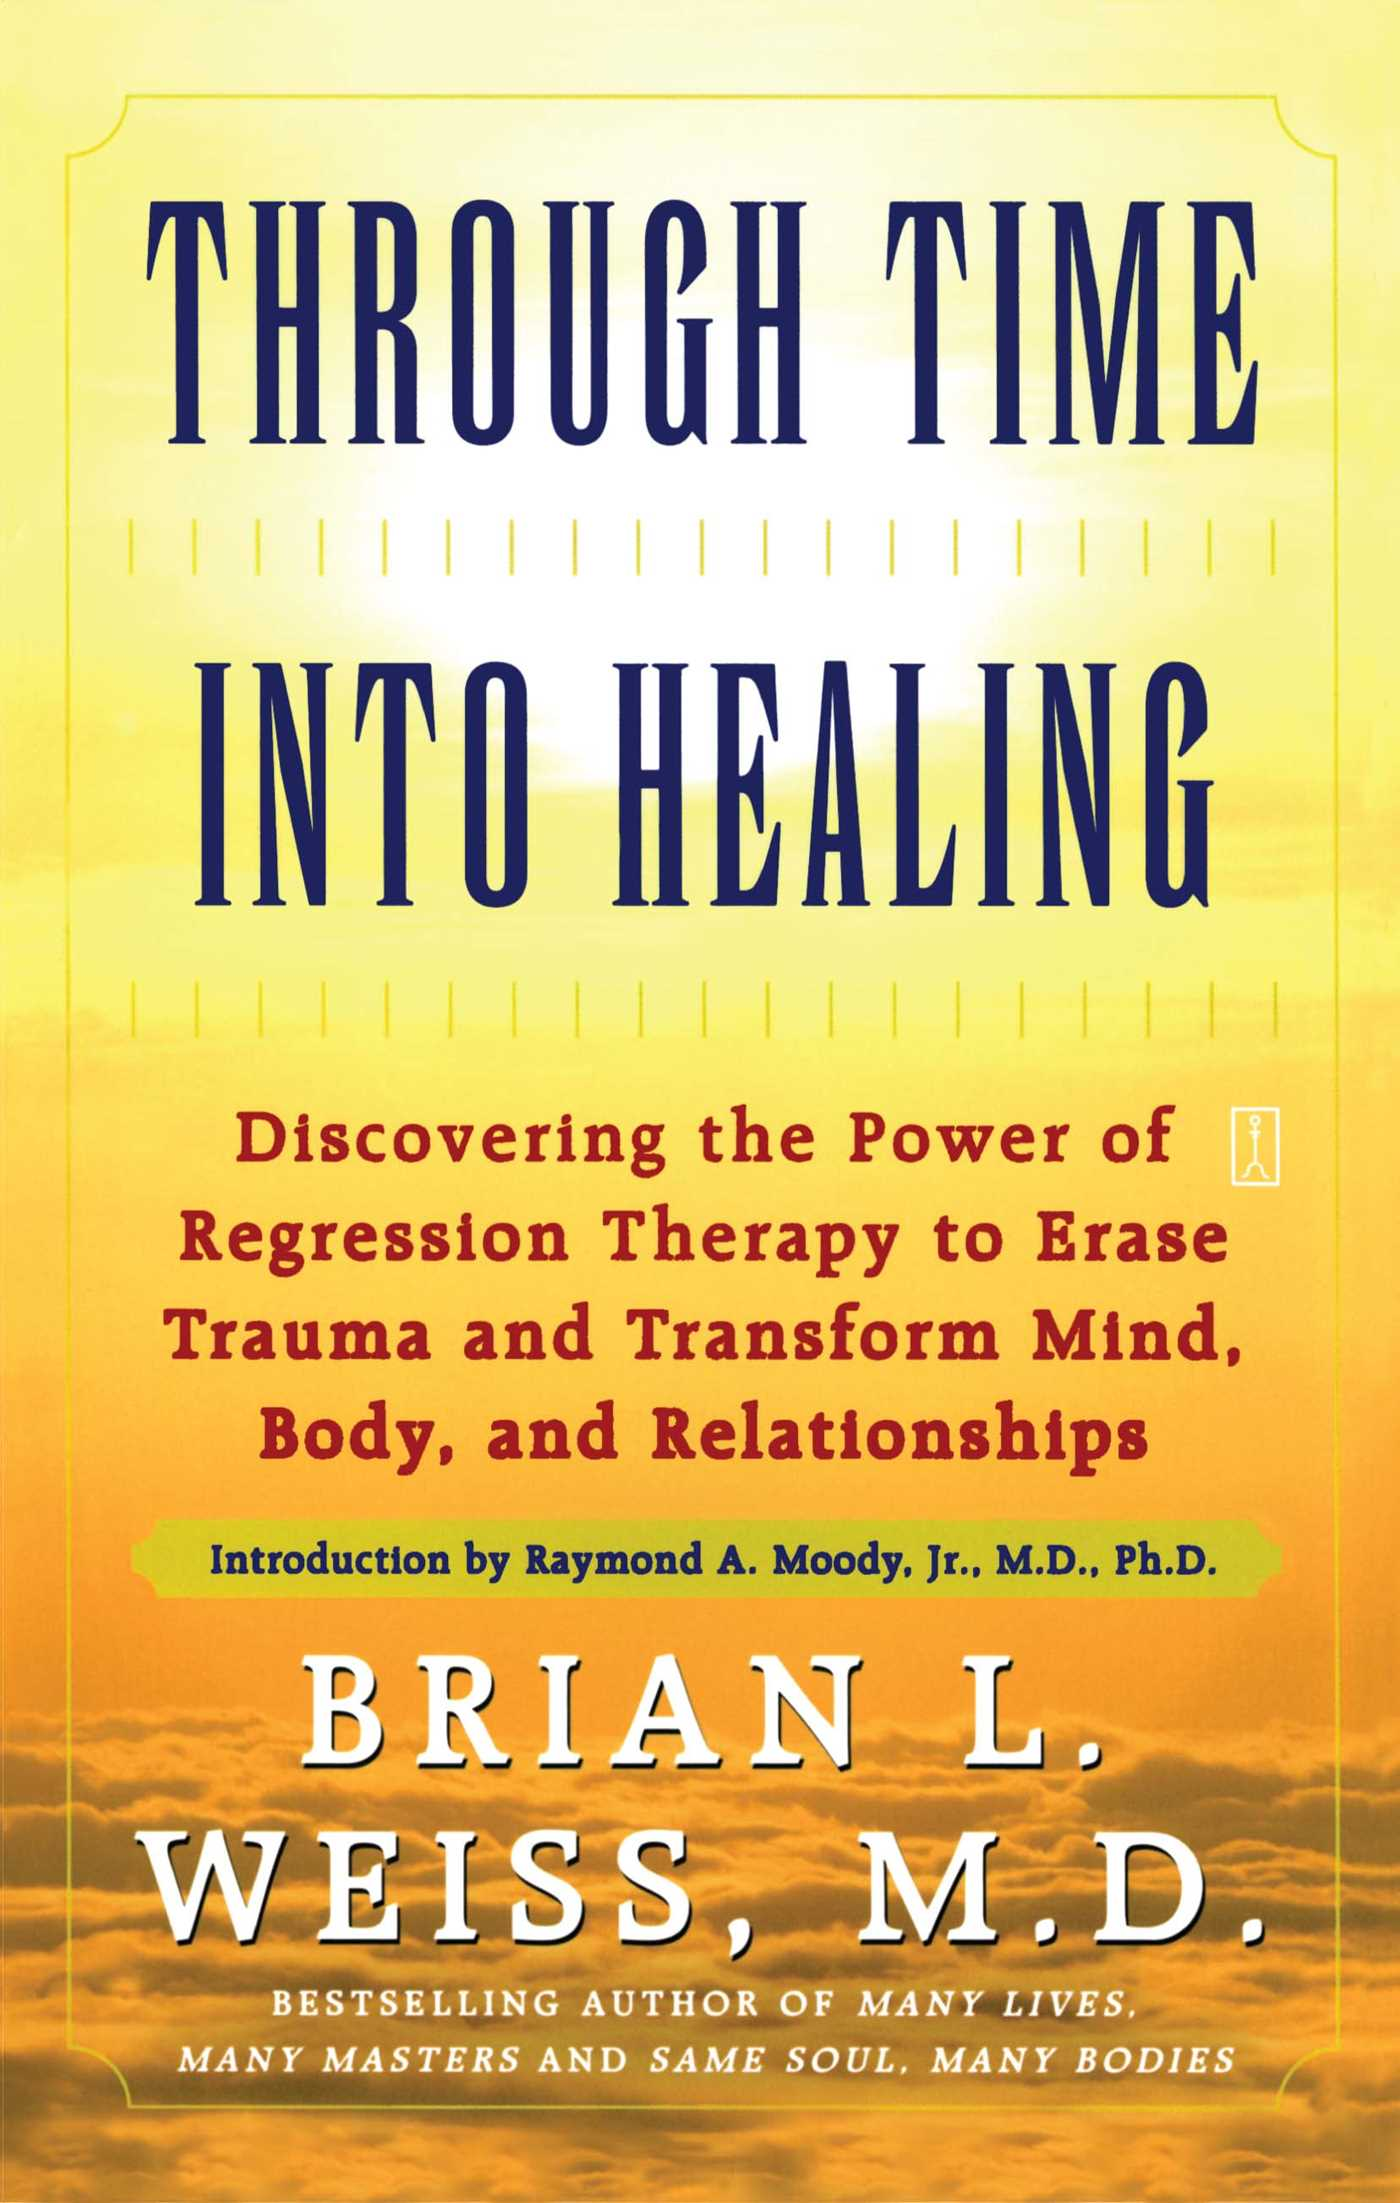 Through-time-into-healing-9781439148044_hr